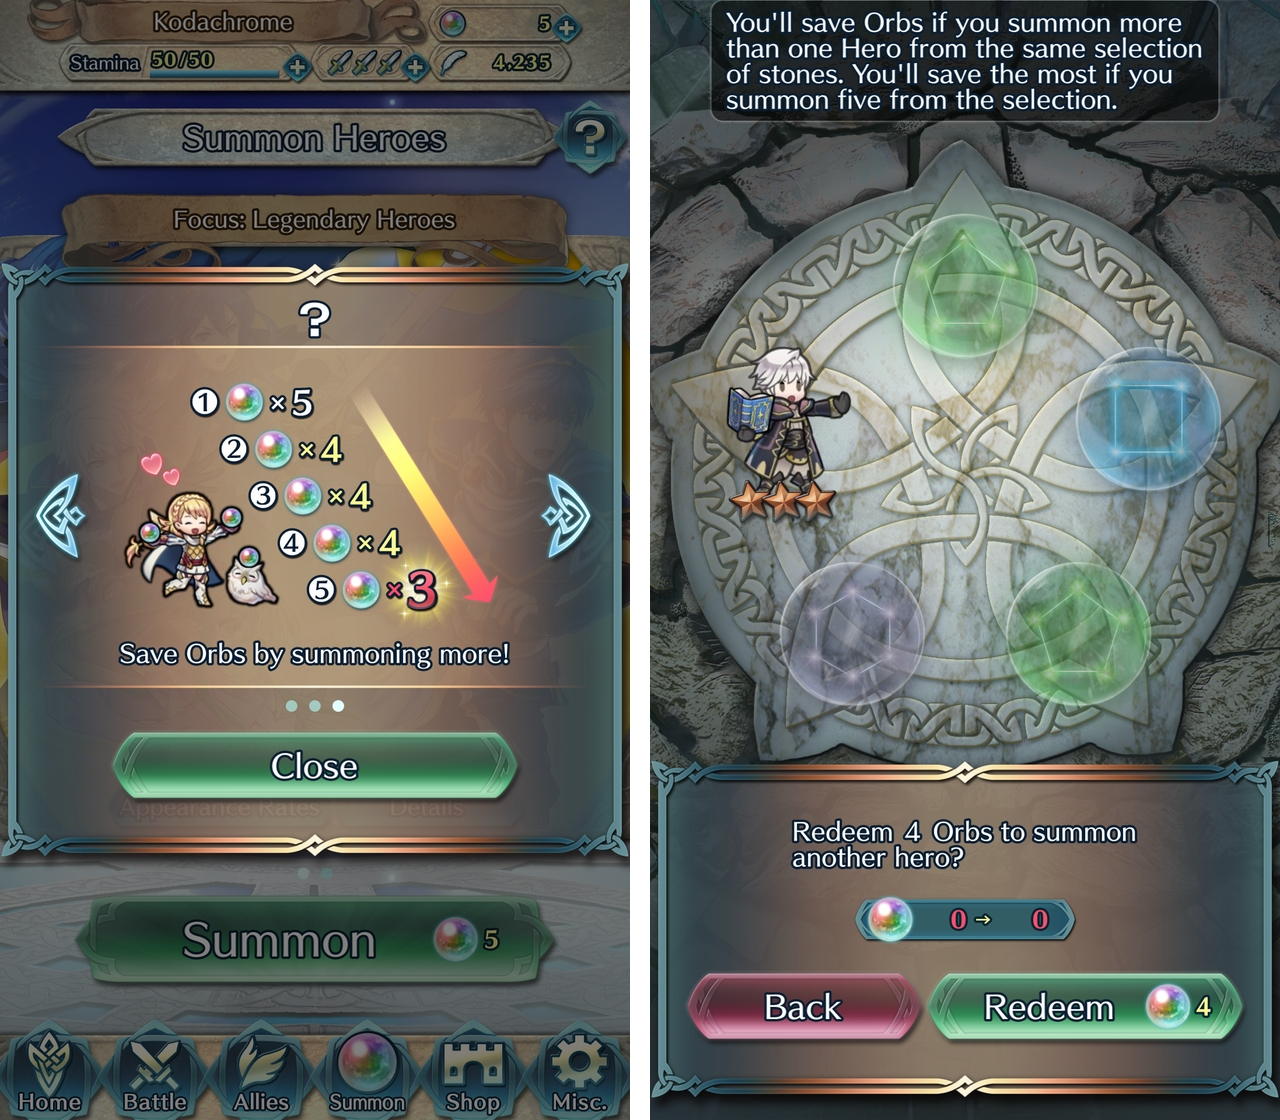 Fire Emblem Heroes summoning screen